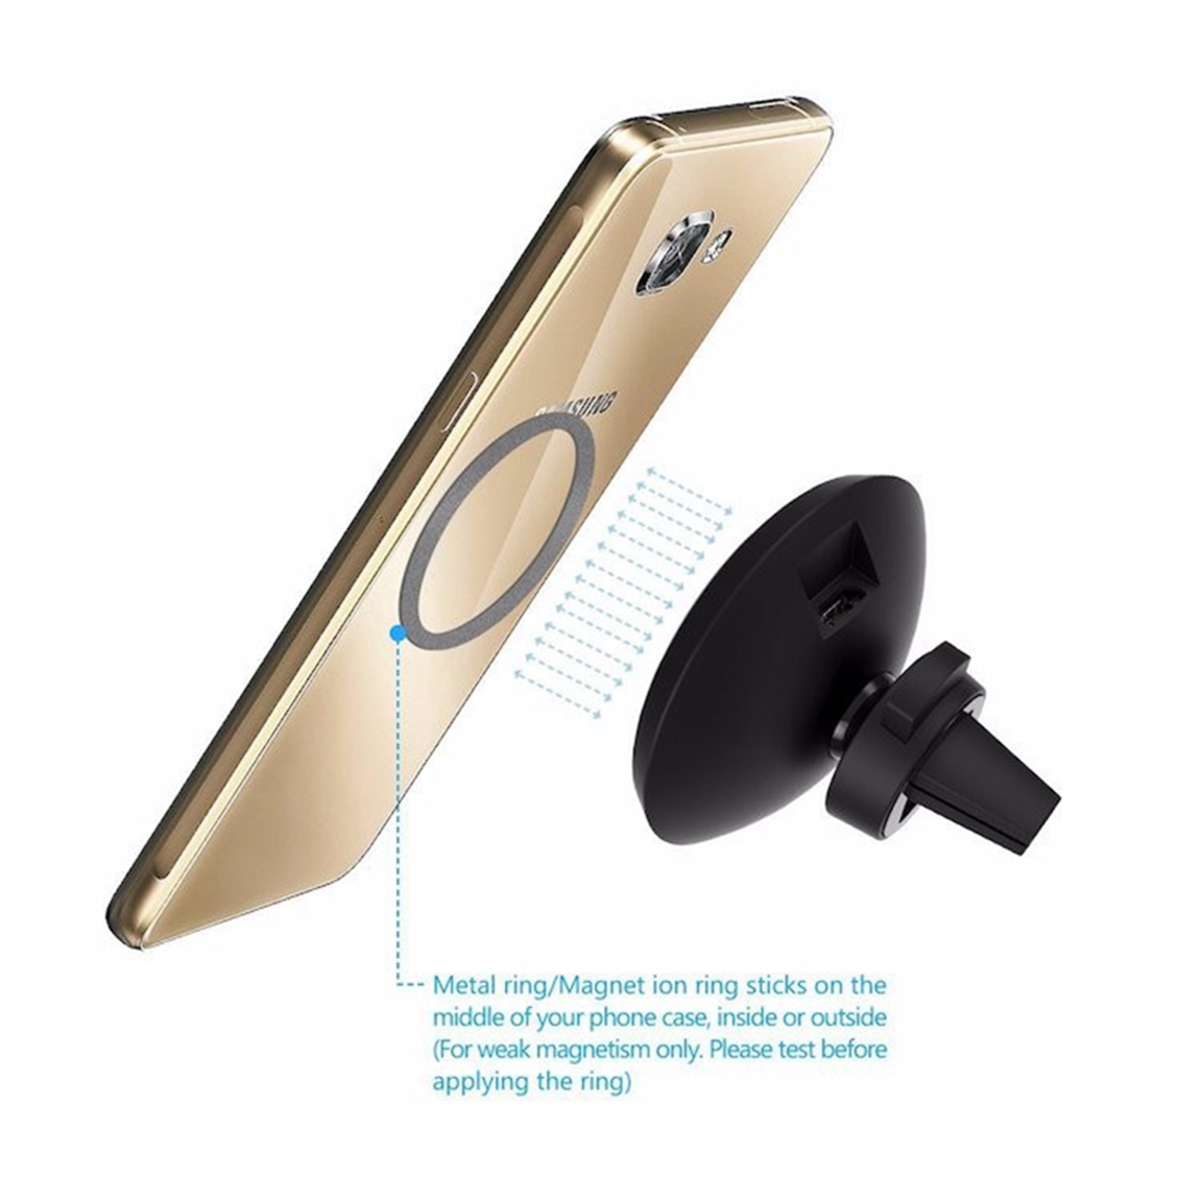 W3 QI Standard Car Magnetic Charger Wireless Charger 5.0V-1A (MAX) Outlet Clamp Contains Magnetic Ri